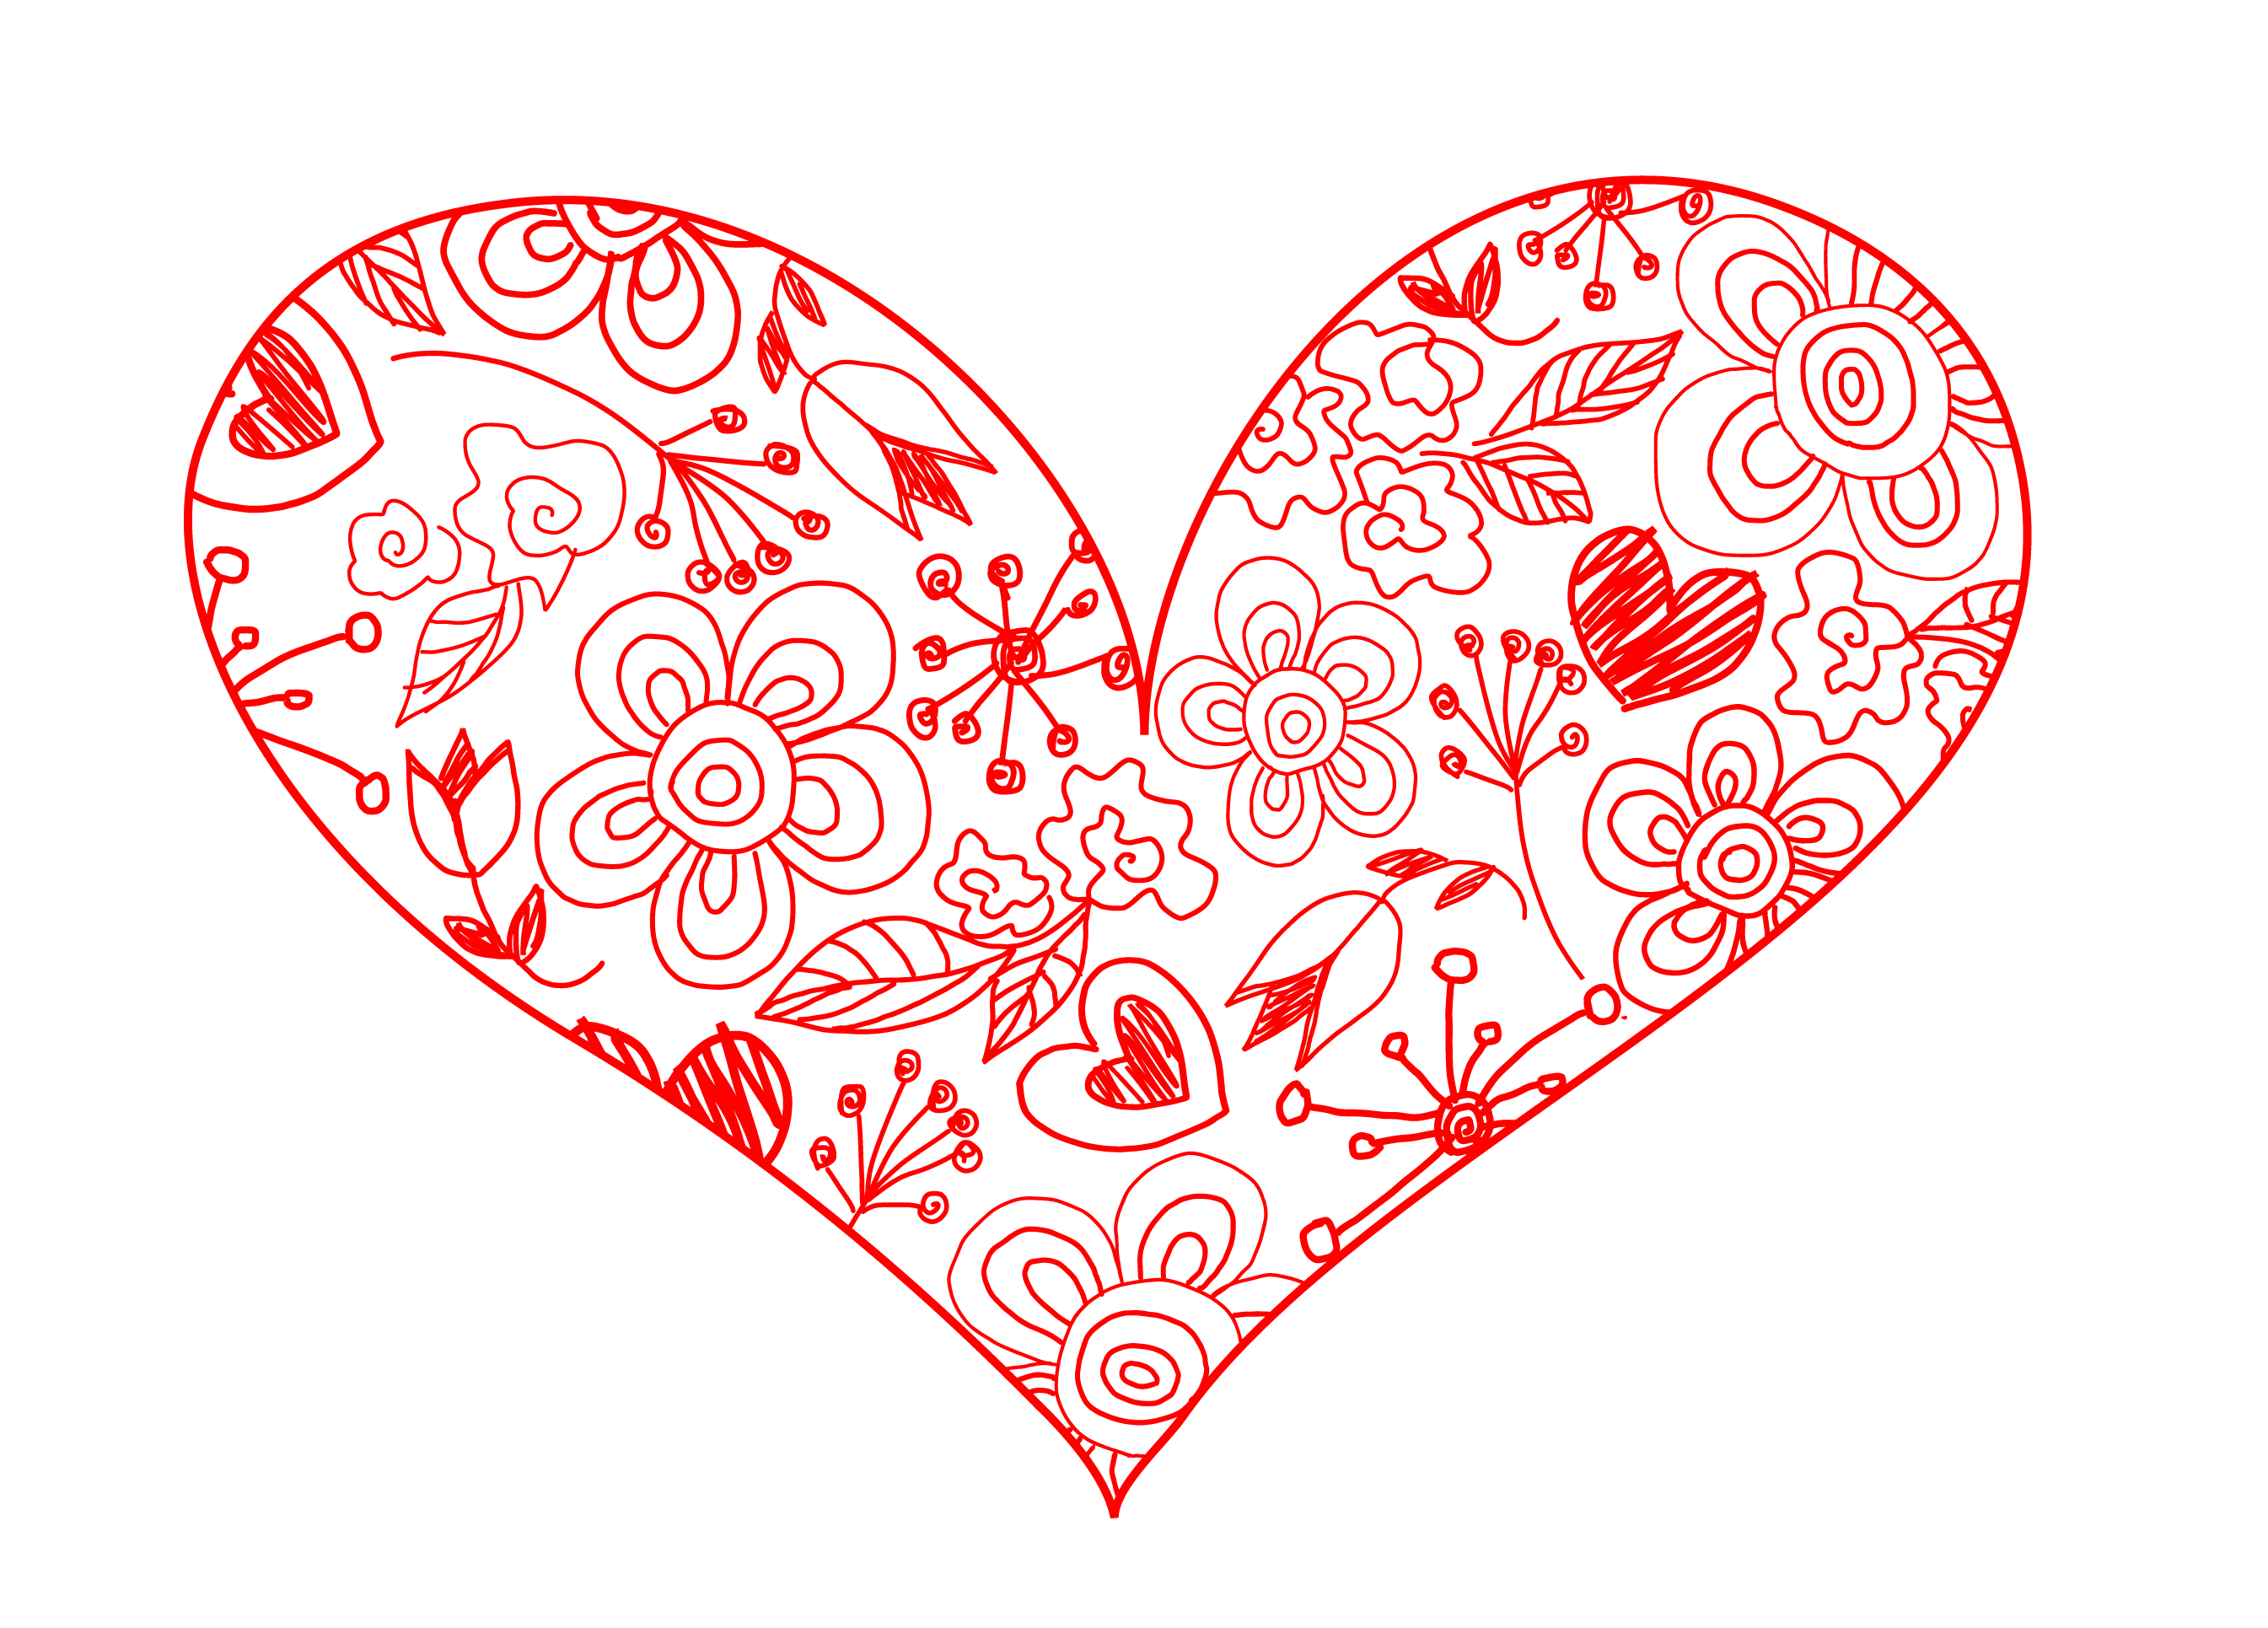 Retro clipart heart, Retro heart Transparent FREE for.